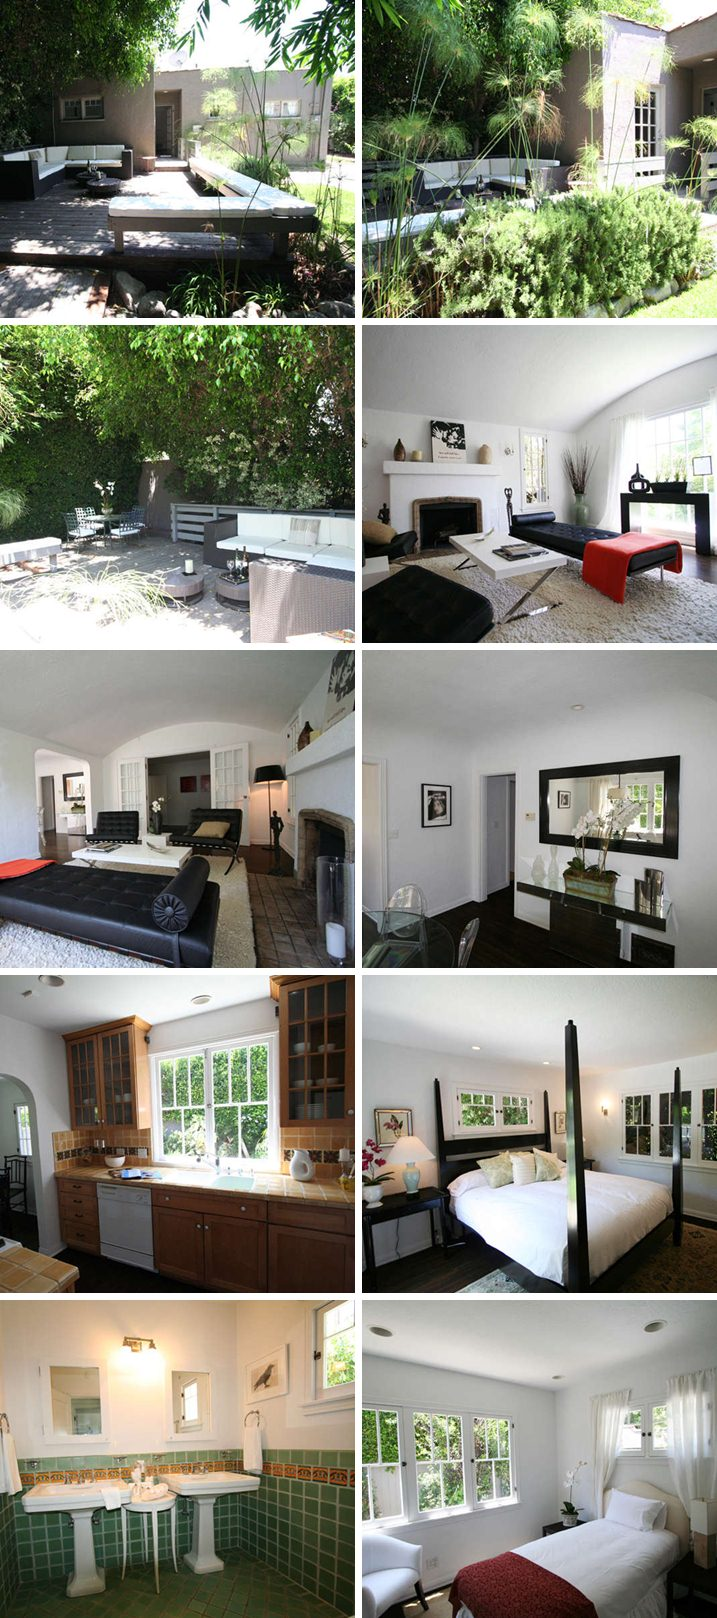 Julie Benz house West Hollywood, California - home pictures West Hollywood, California